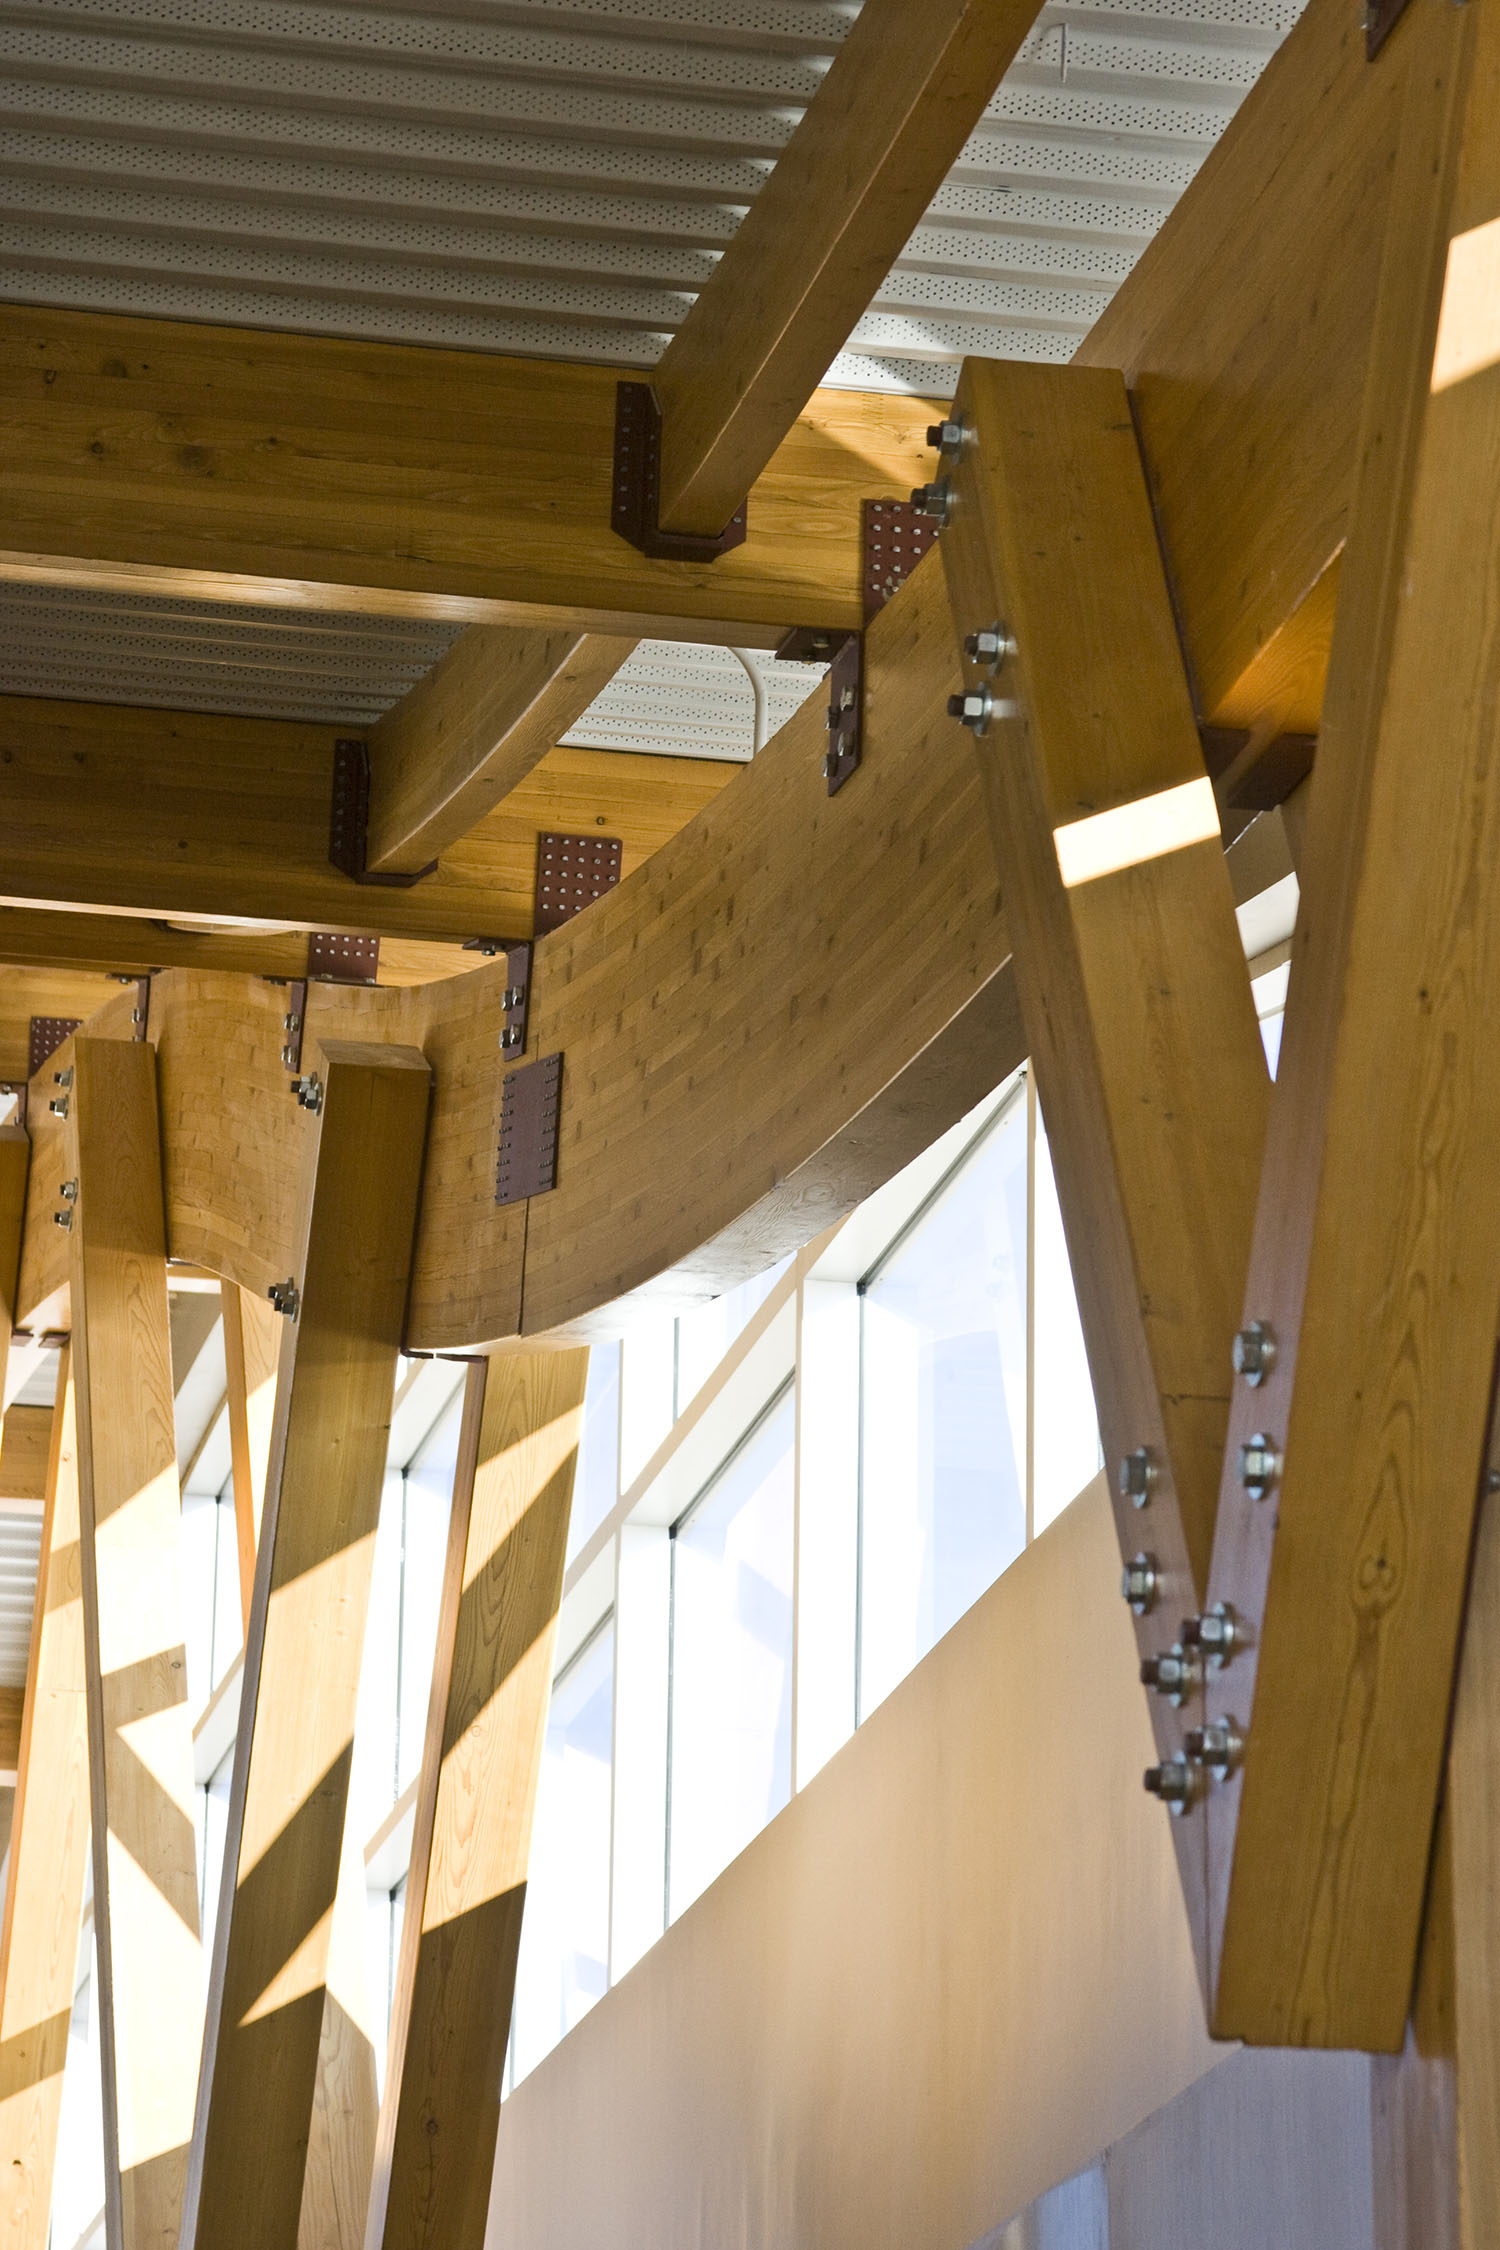 Sunova Credit Union, interior photo of building structural systems / Photo: Tracy A Wieler